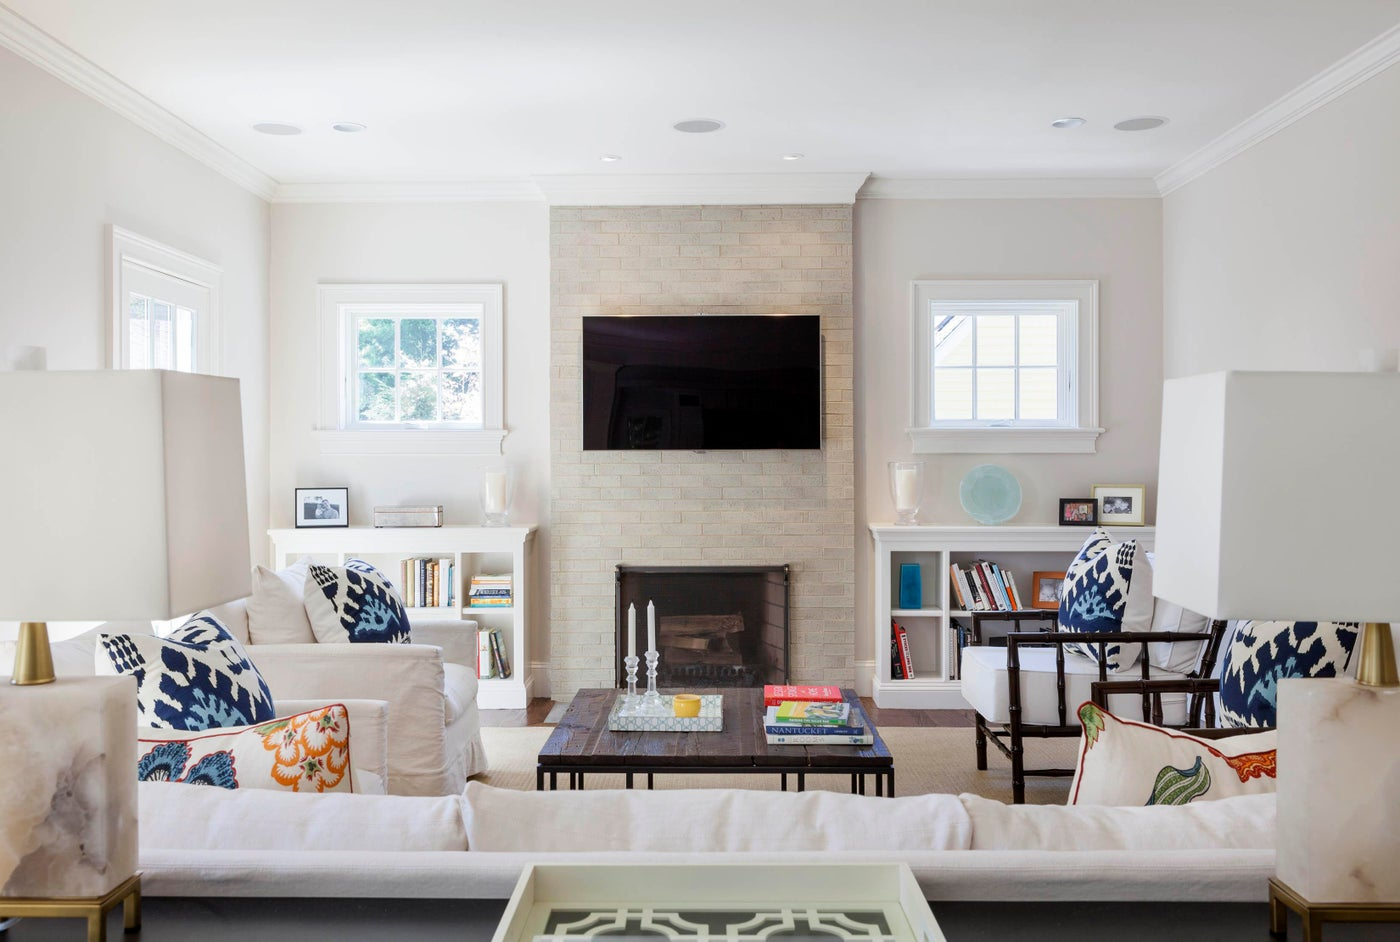 A rustic glazed brick tile makes a statement as it wraps the fireplace wall